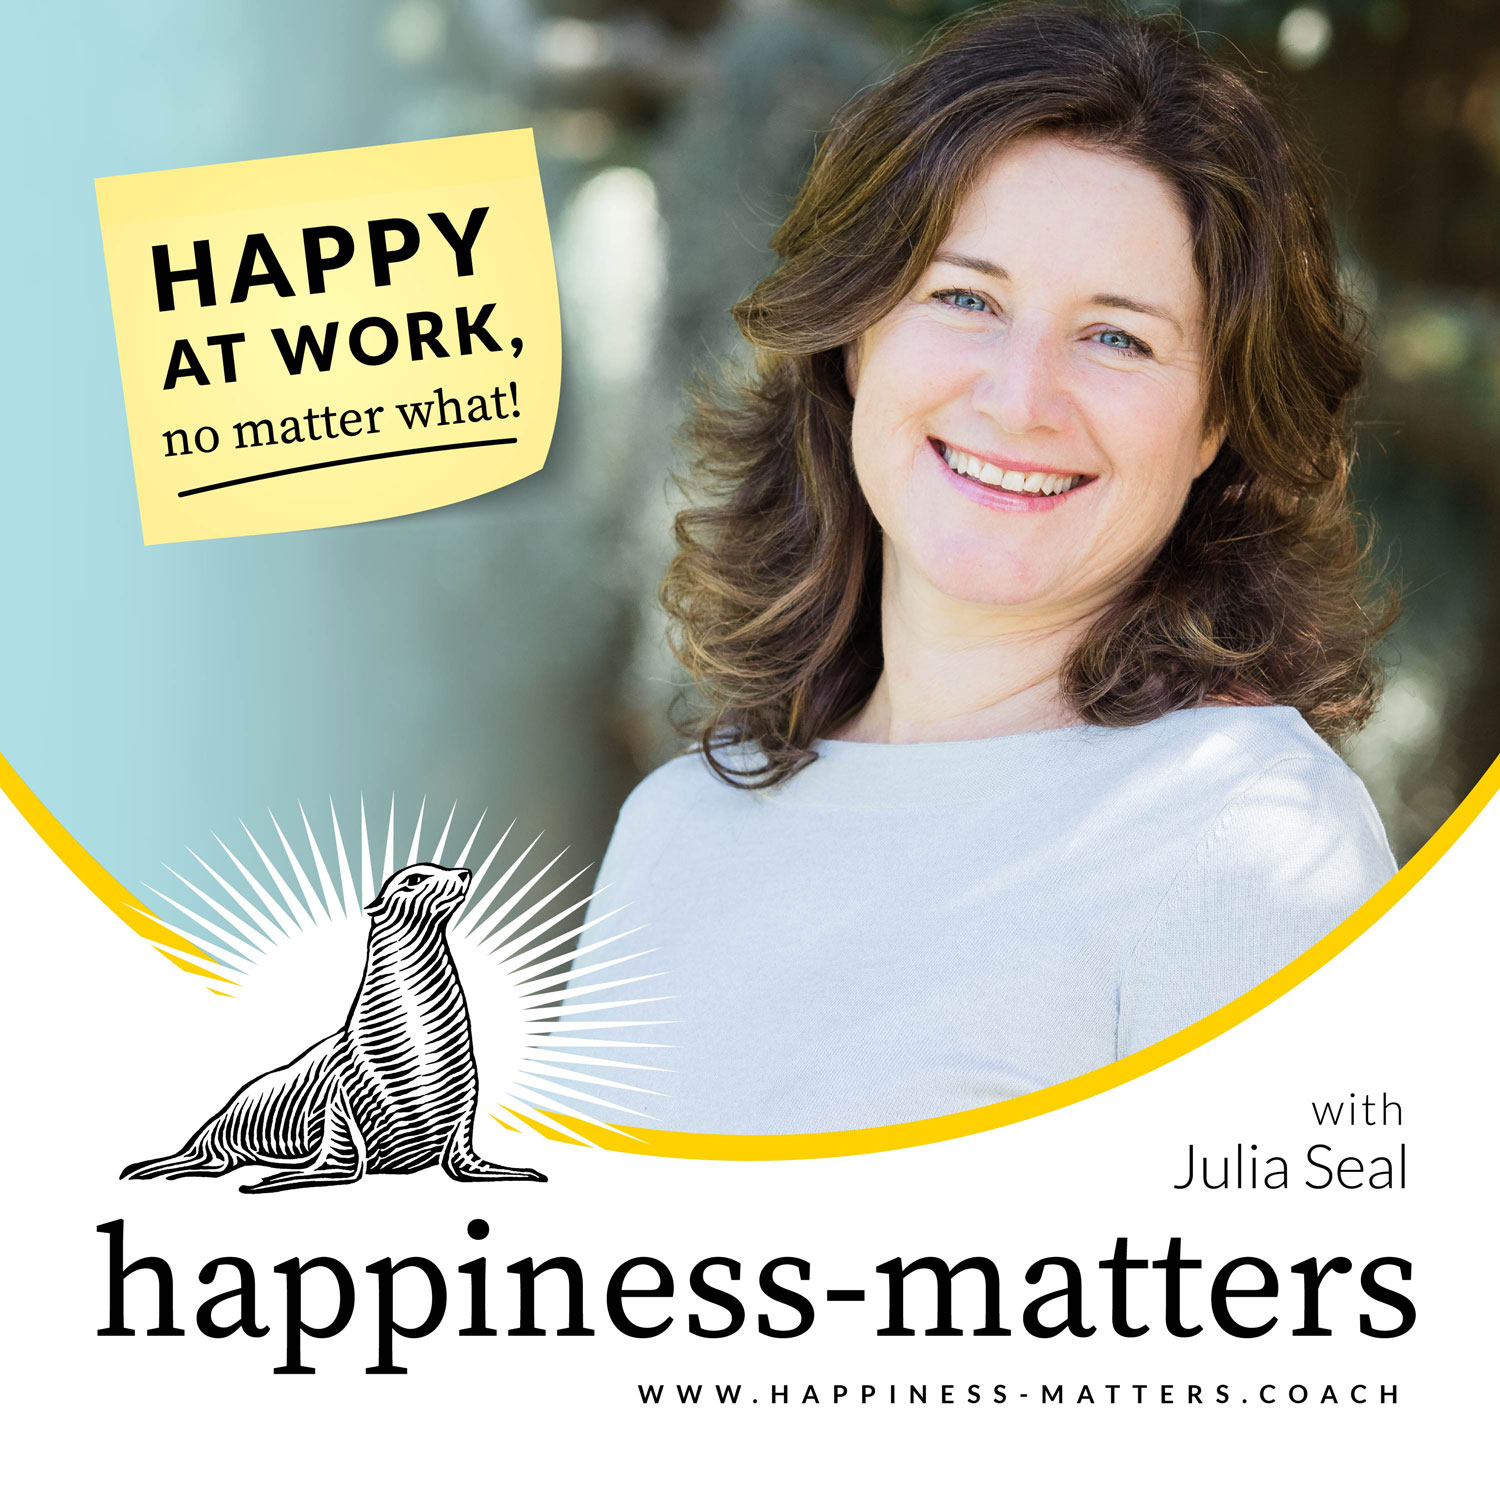 The Happiness-Matters Podcast: Happy at work - no matter what! show art